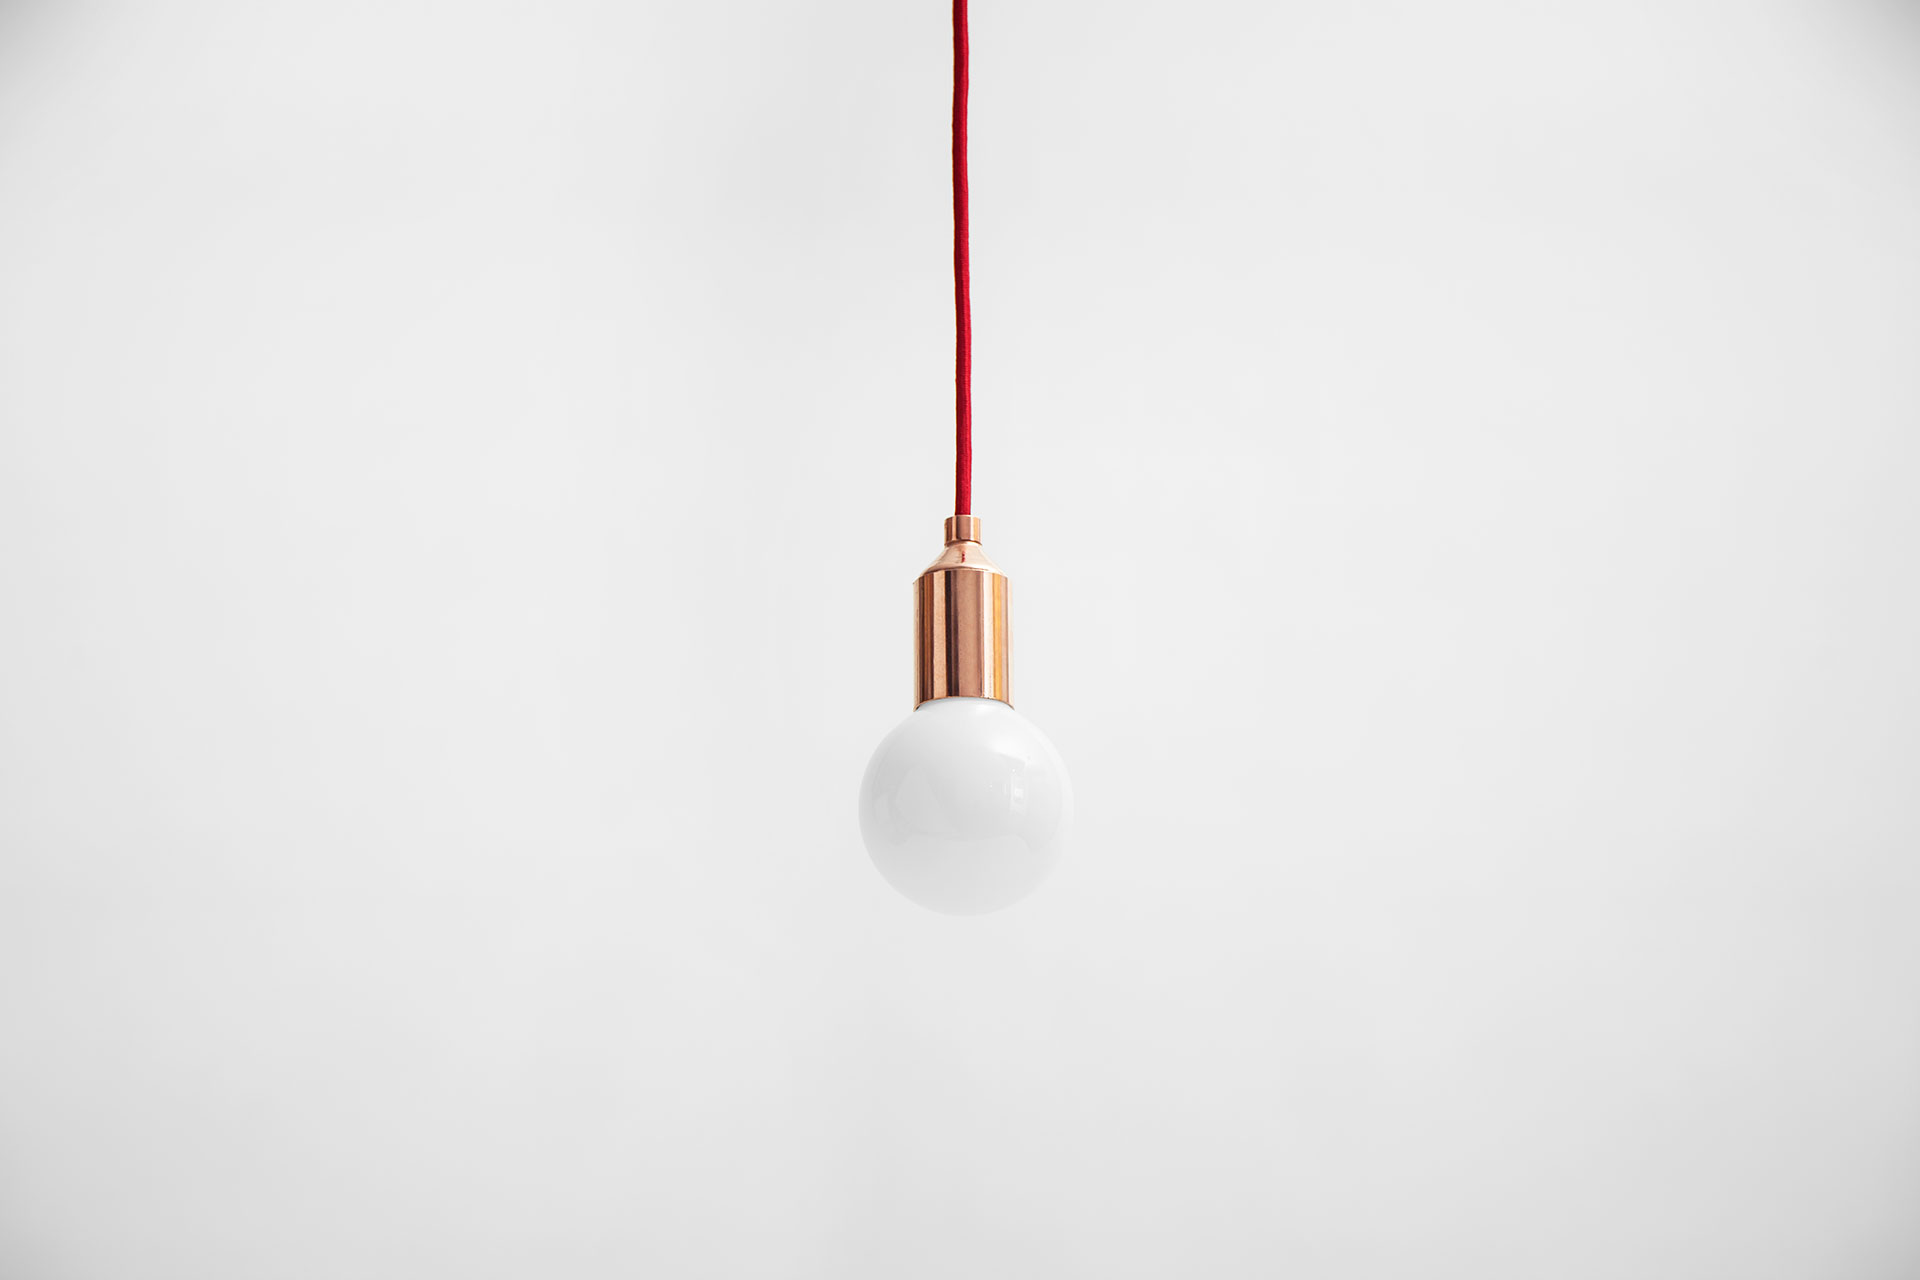 Simple copper pendant lamp in modern café